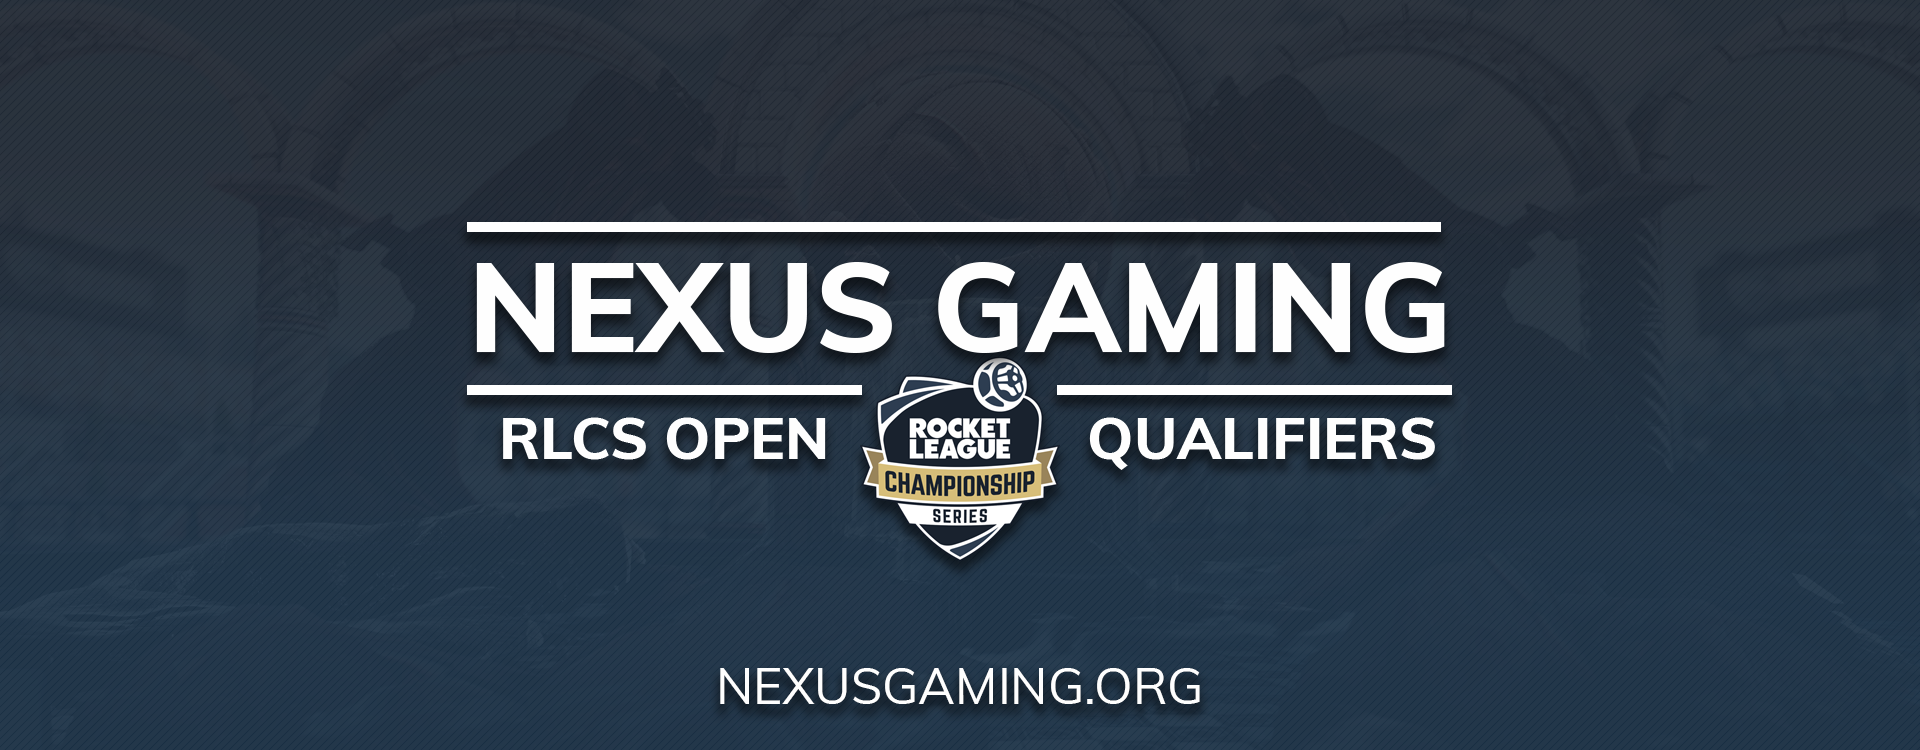 Nexus Gaming Rocket League Championship Series Open Qualifier